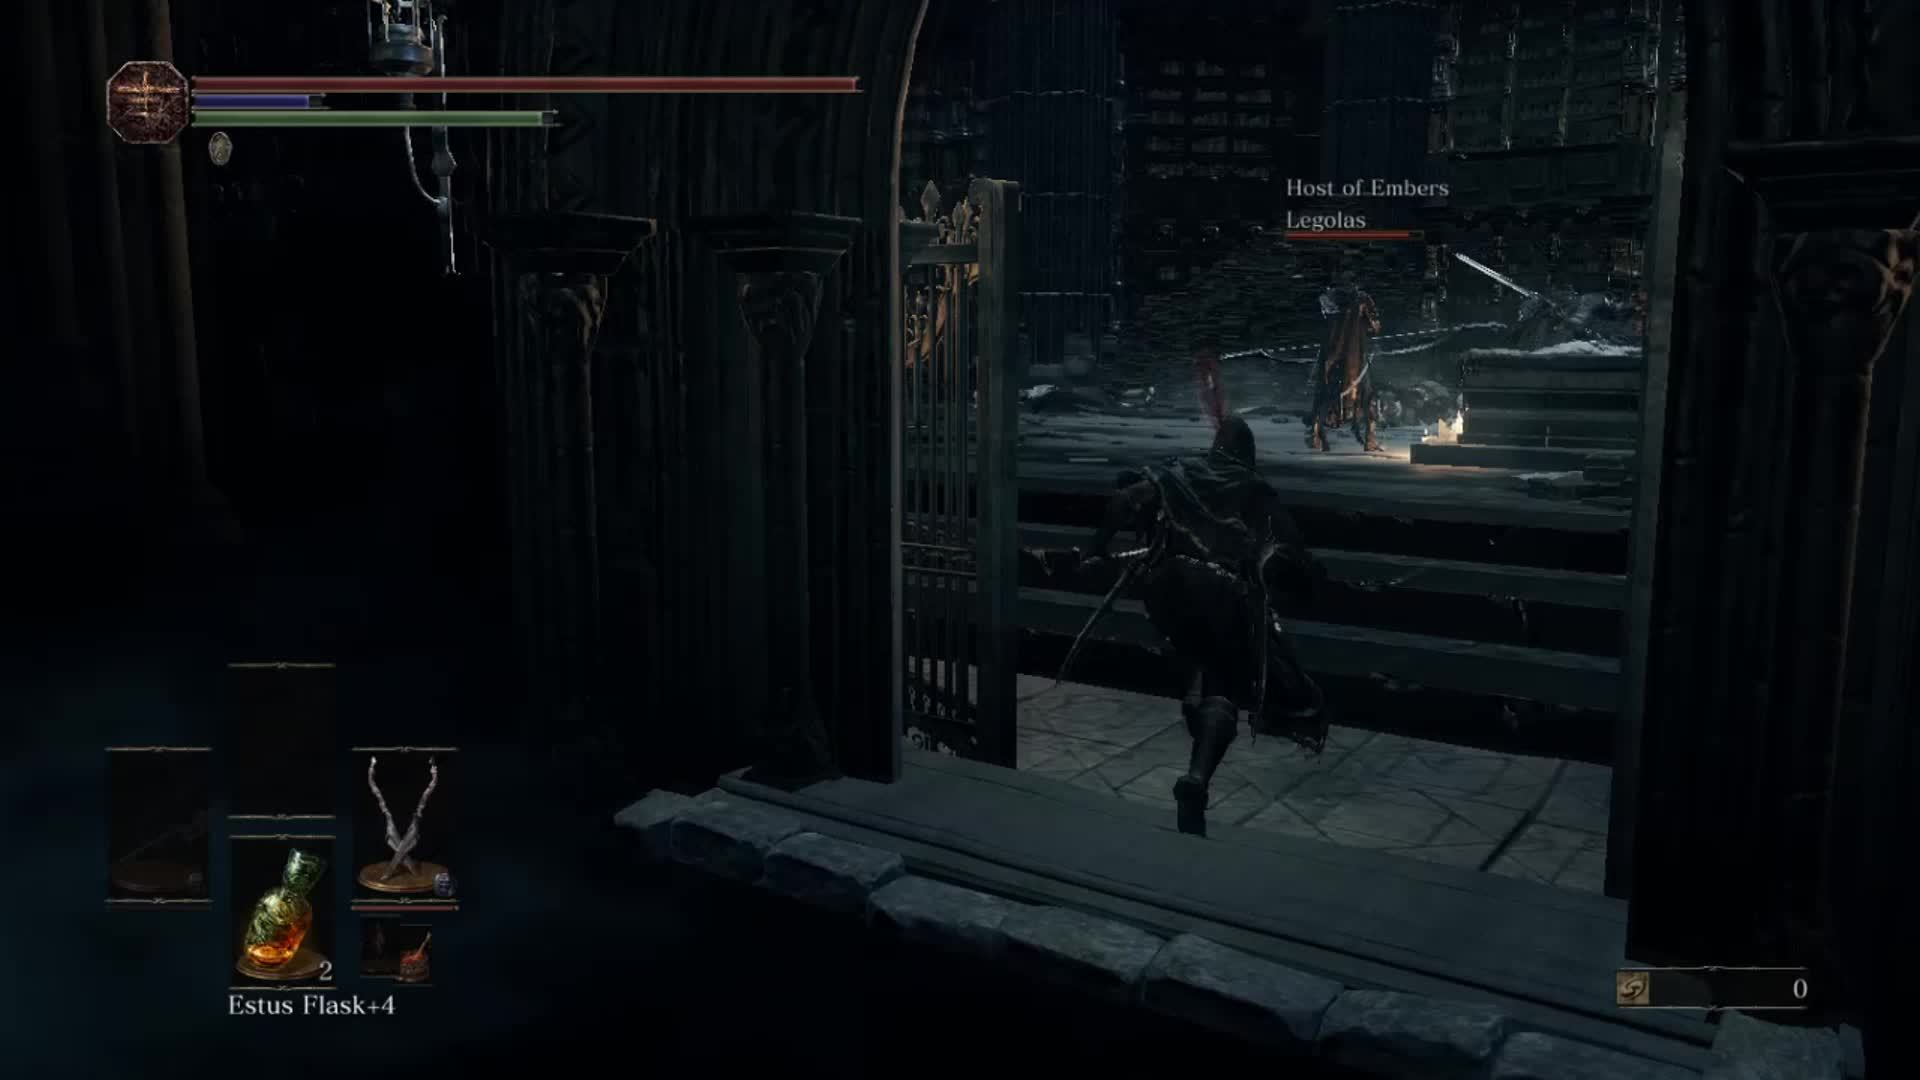 darksouls3, Lord of the Rings - Dark Souls 3 GIFs